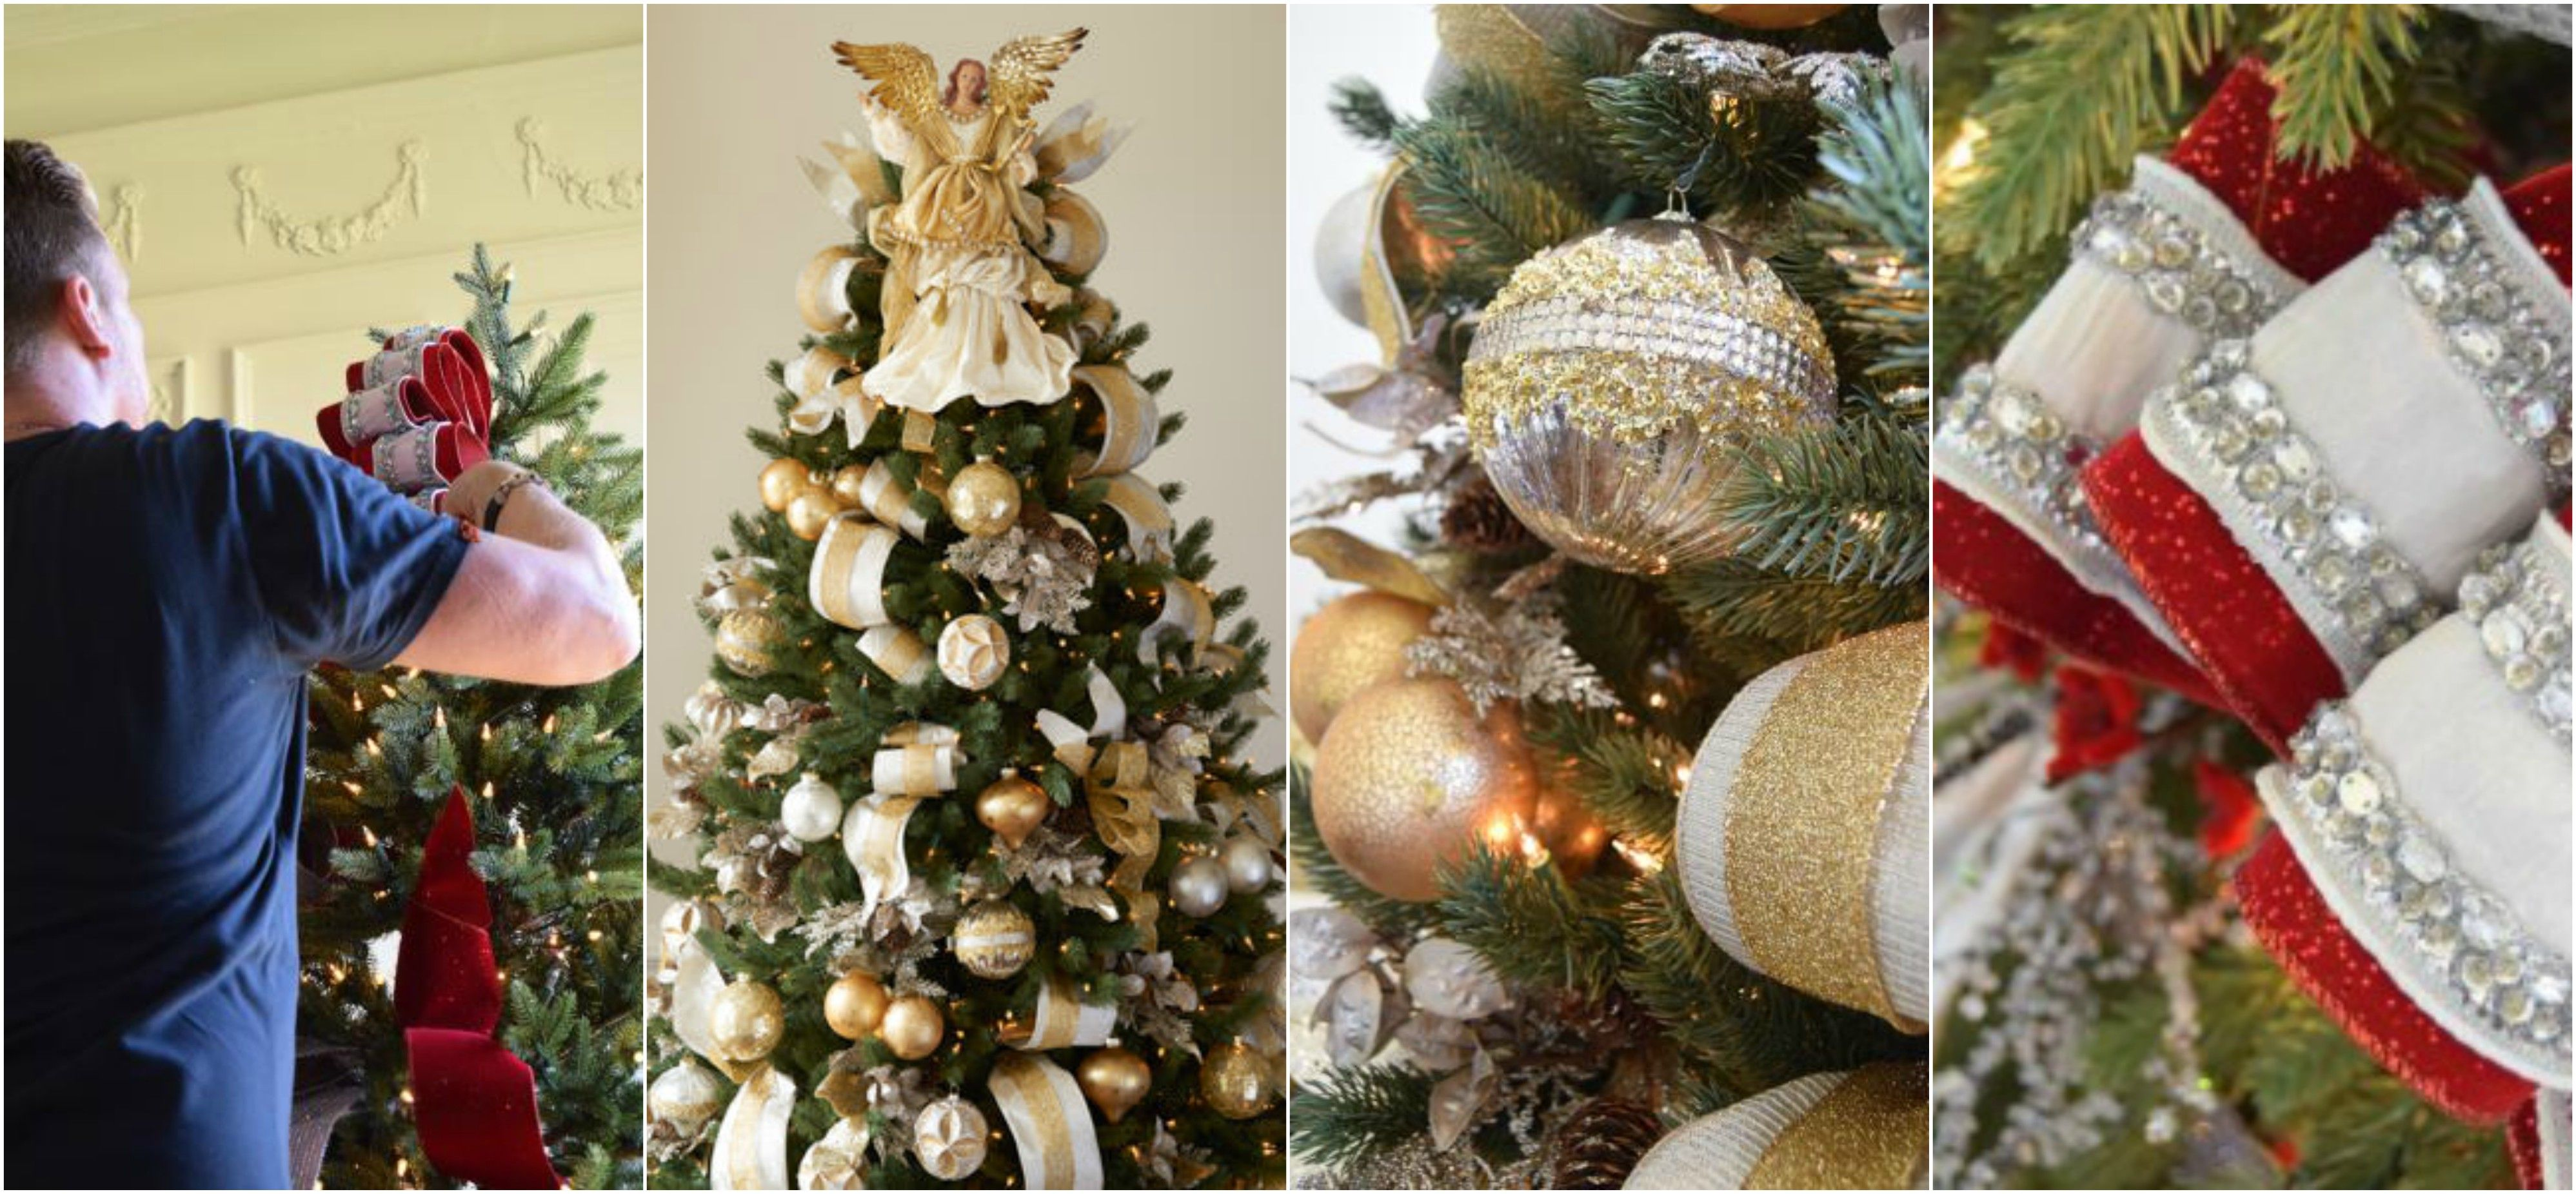 home unique christmas of how decorations decorated decoration decor to tree pictures ideas trees